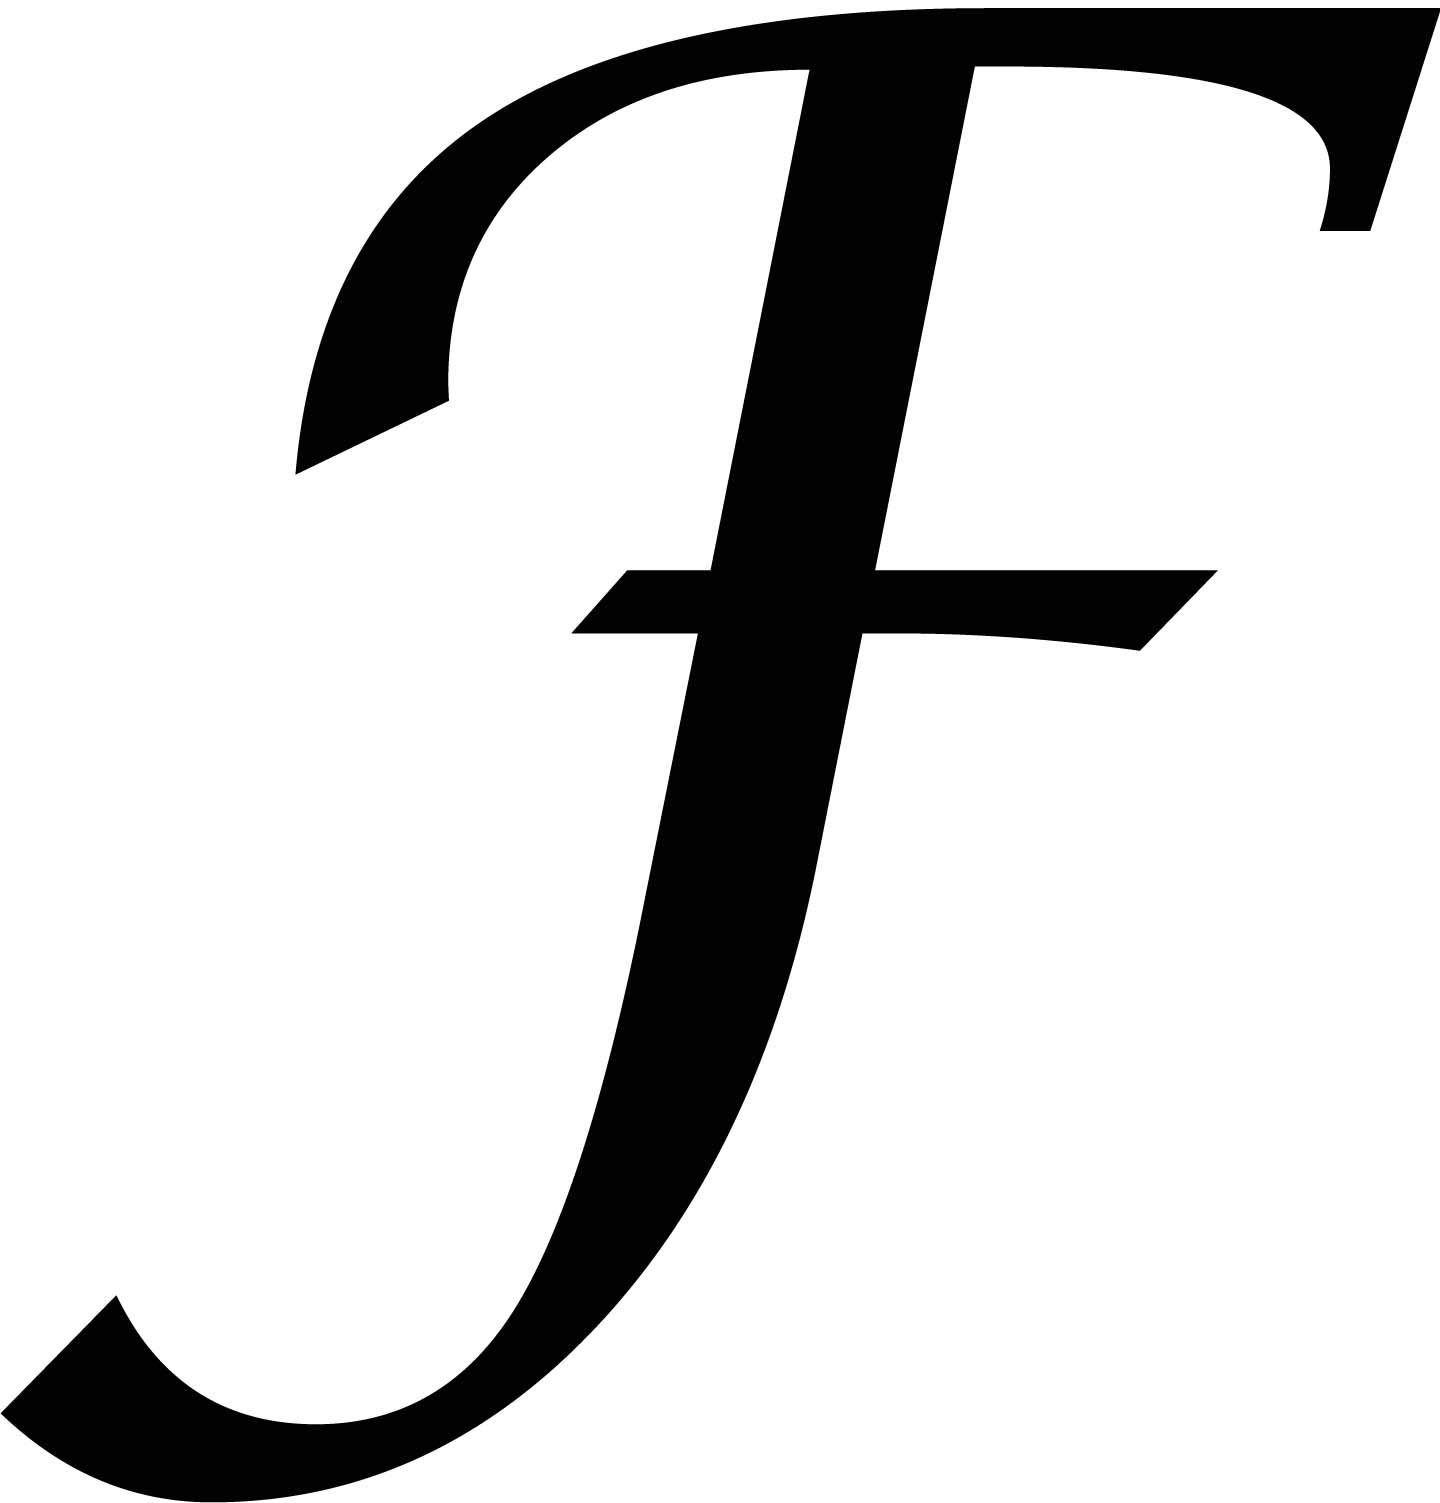 F | Created A Letter F Template And Printed It Out. If You Want One